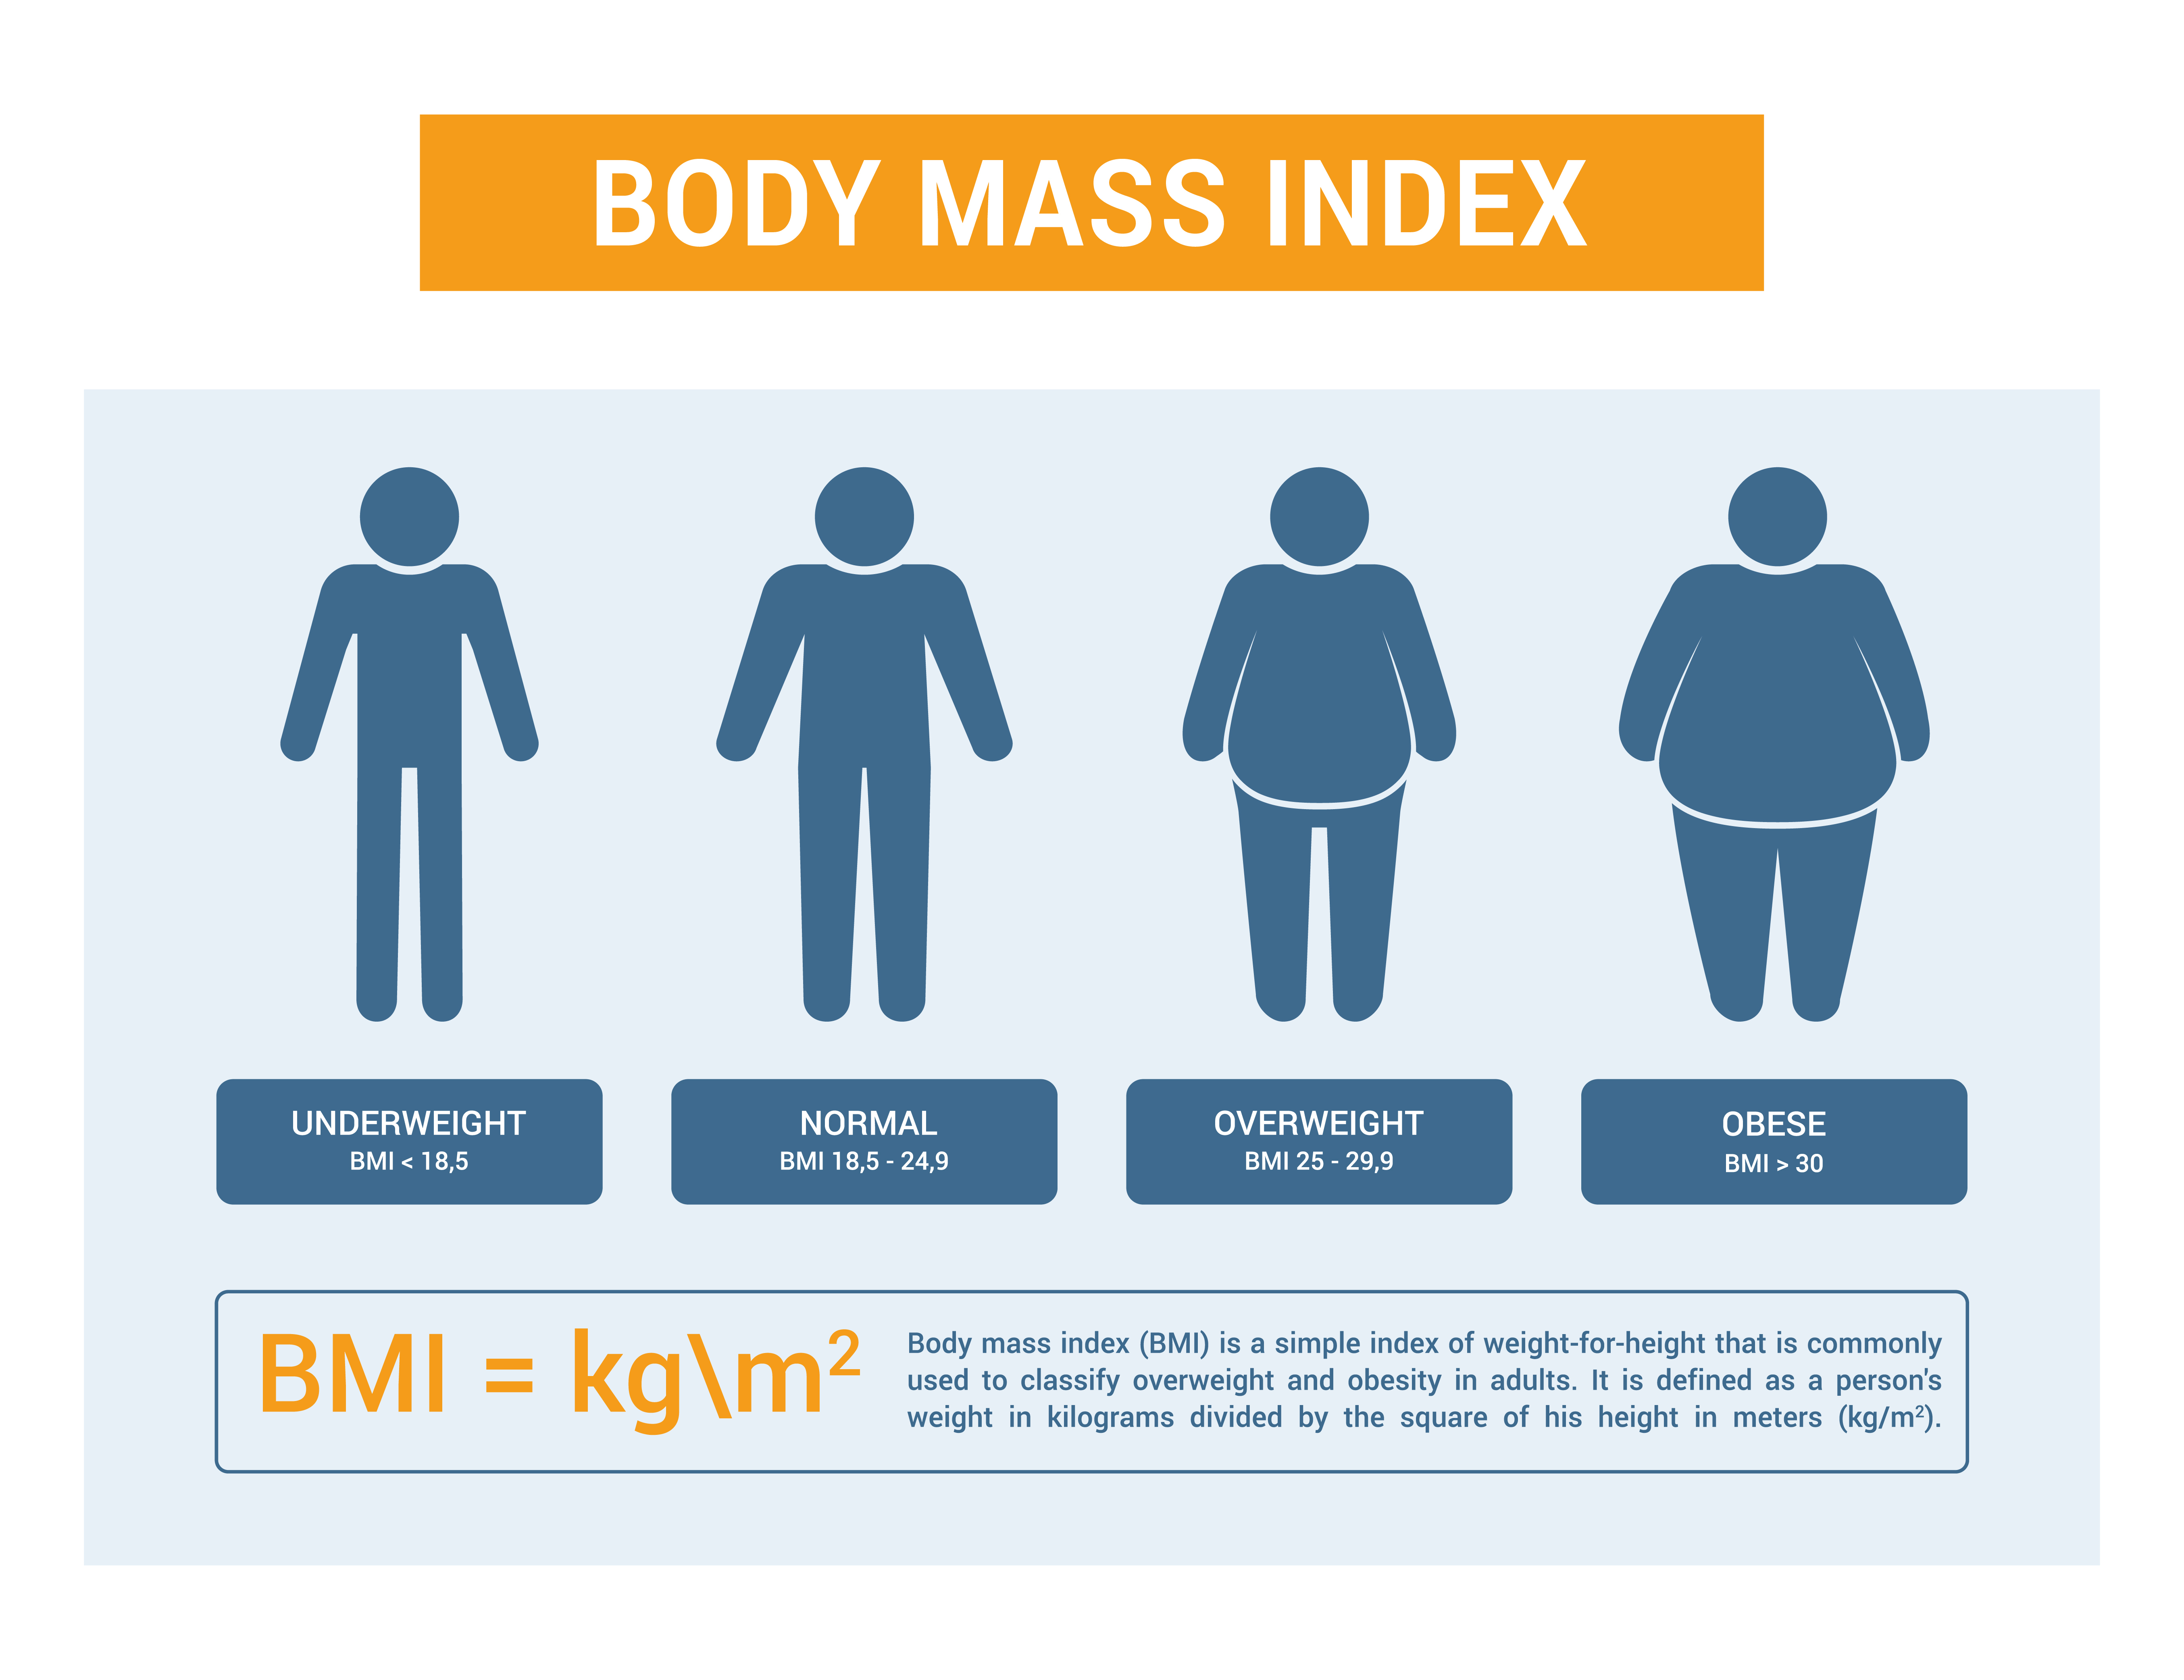 December Bmi Measure Of Good Health